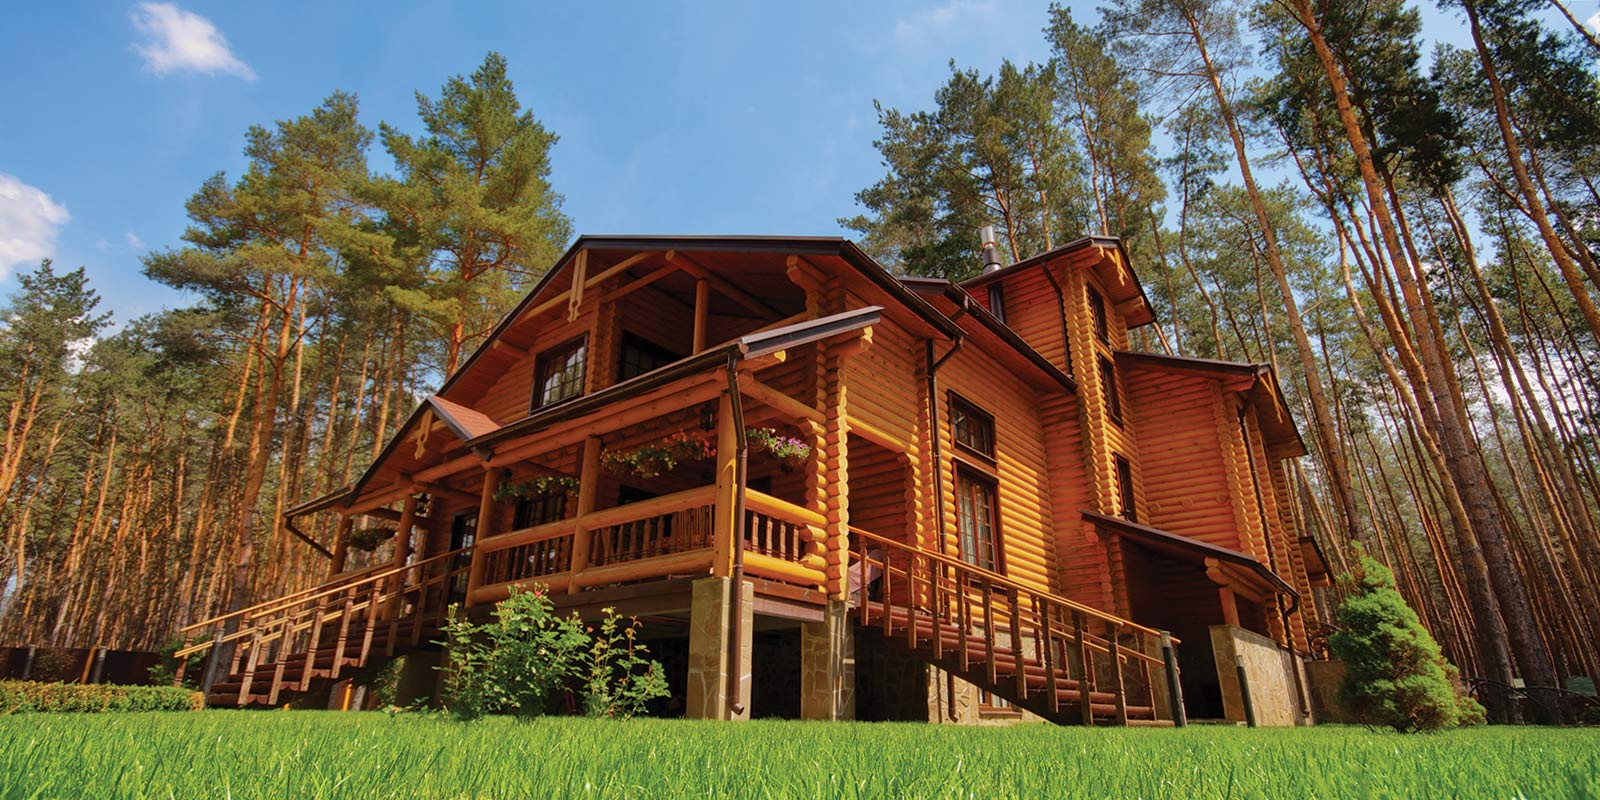 Log homes log cabins for sale nationwide united country for Small rustic cabins for sale